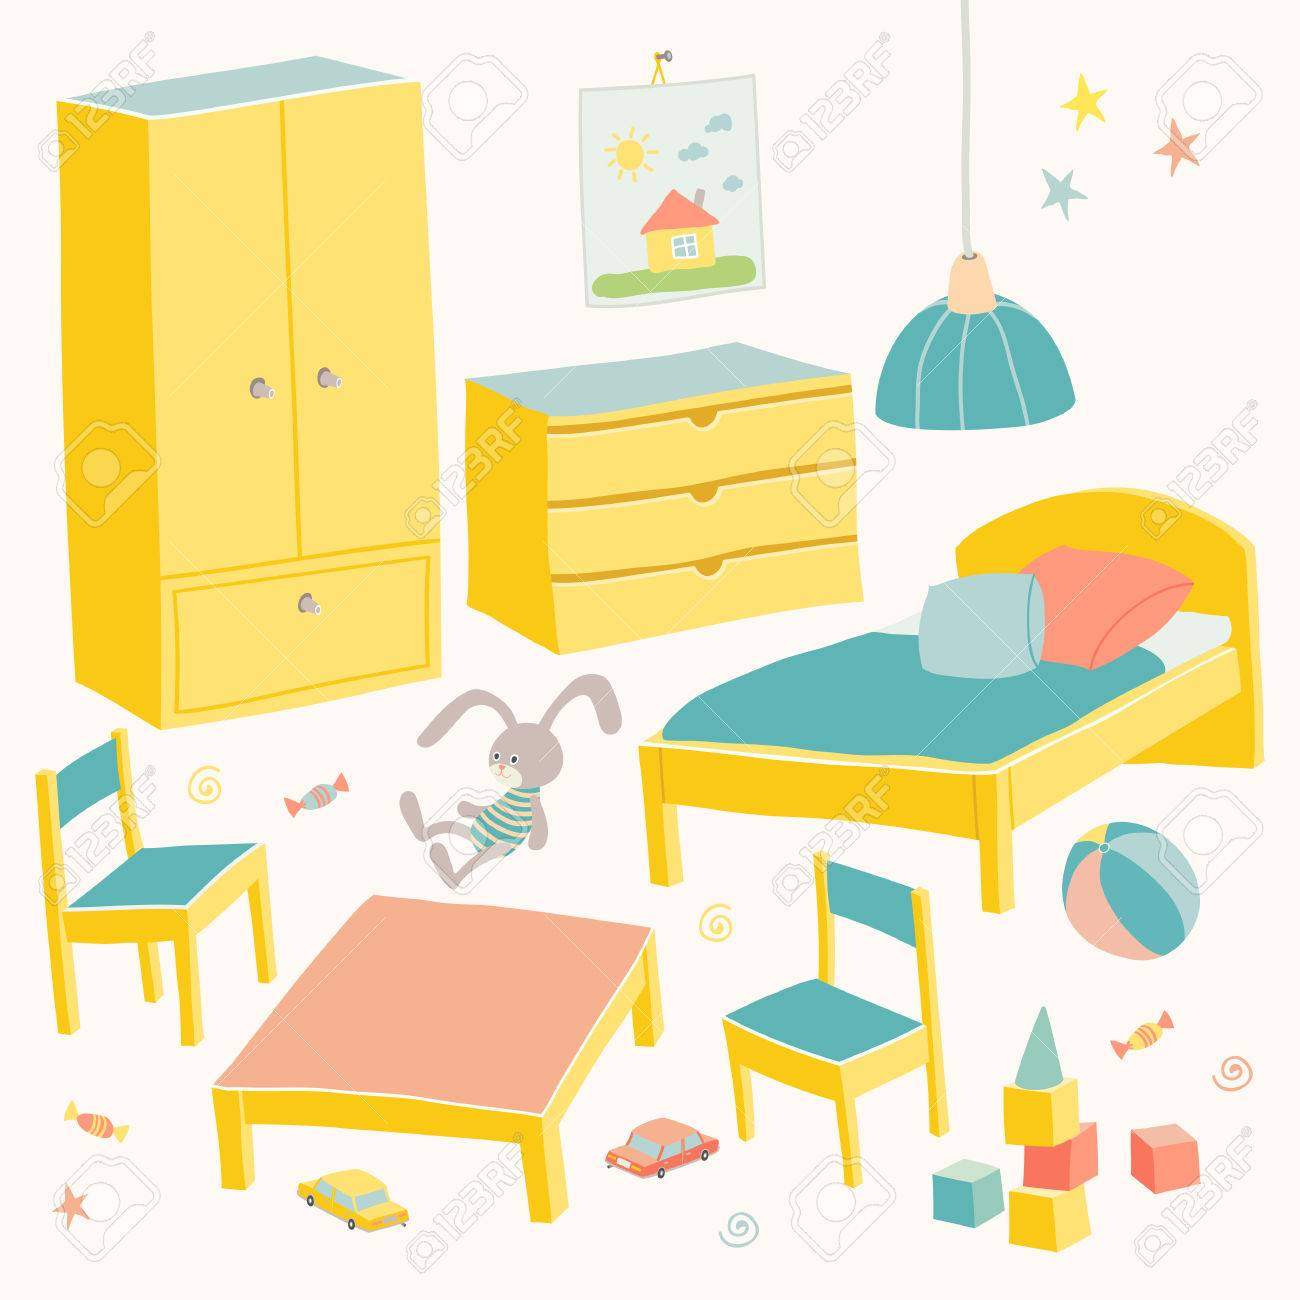 Set Of Furniture For Children Room Kids Small Furniture Bed Royalty Free Cliparts Vectors And Stock Illustration Image 80350999